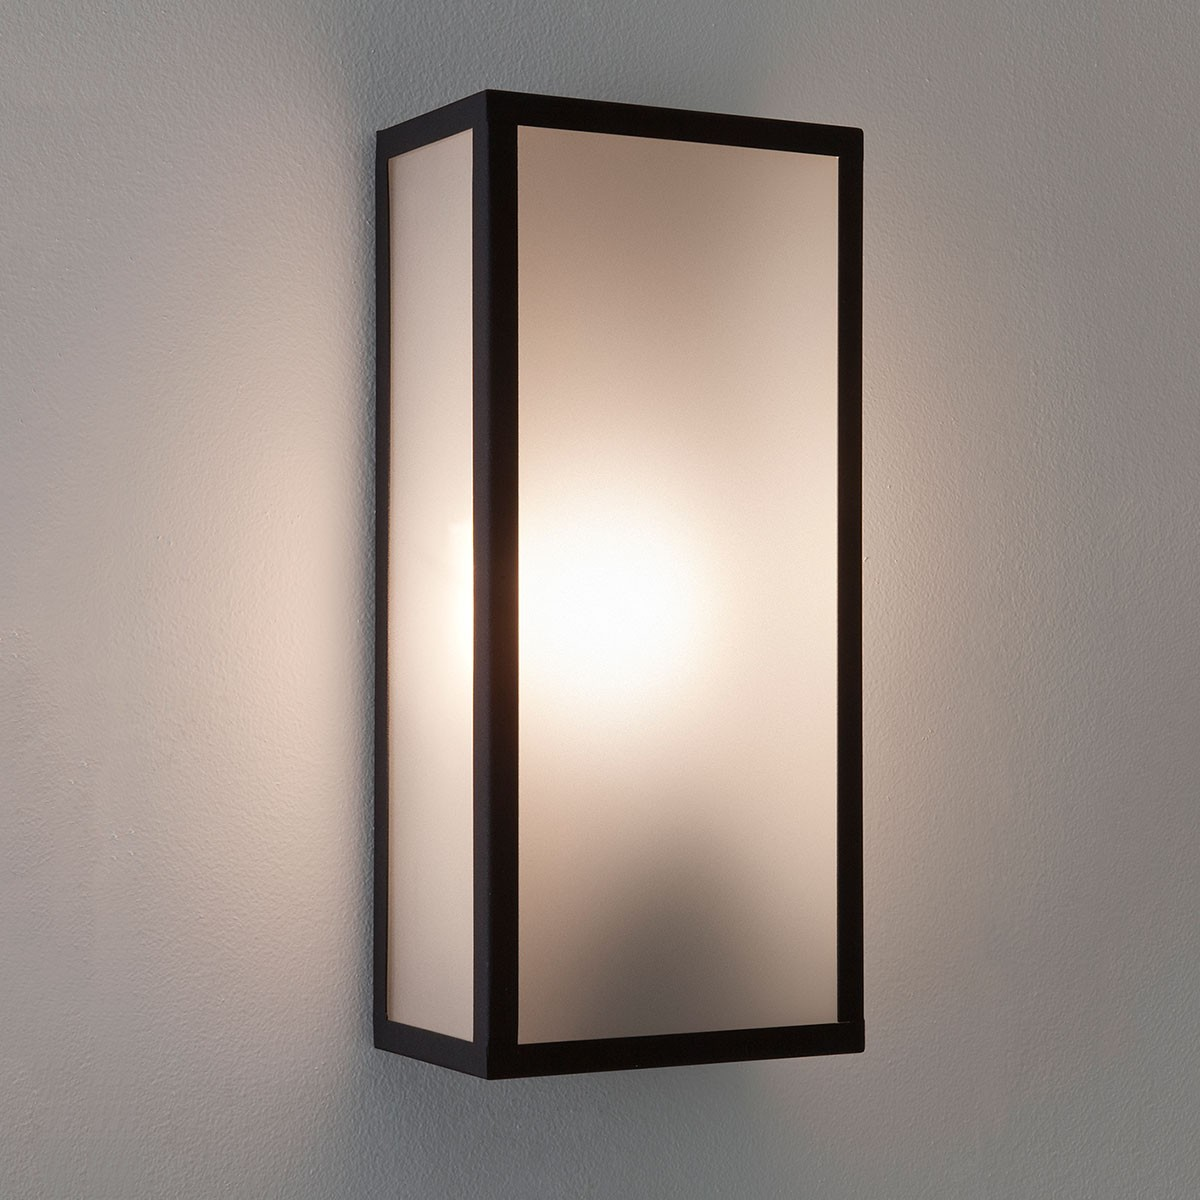 Astro Messina Sensor Black Outdoor Wall Light with Motion Sensor at UK Electrical Supplies.